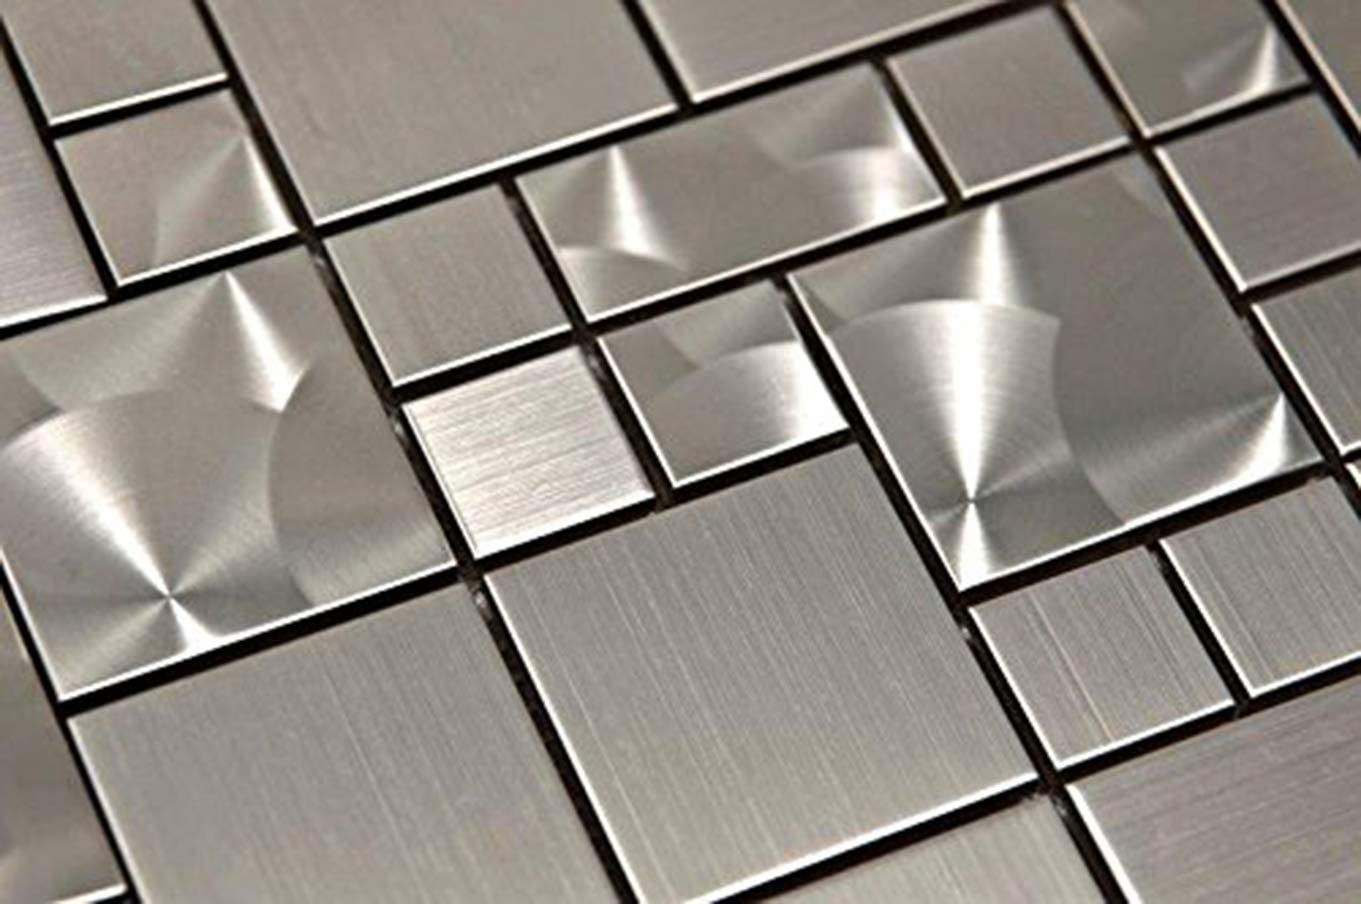 Stainless Steel Interlocking Pebble Floor Tile Kitchen Bathroom And Patio Flooring Indoor And Outdoor Use Square Grey Mix Mosaic Quick And Easy Grout Installation Amazon Com